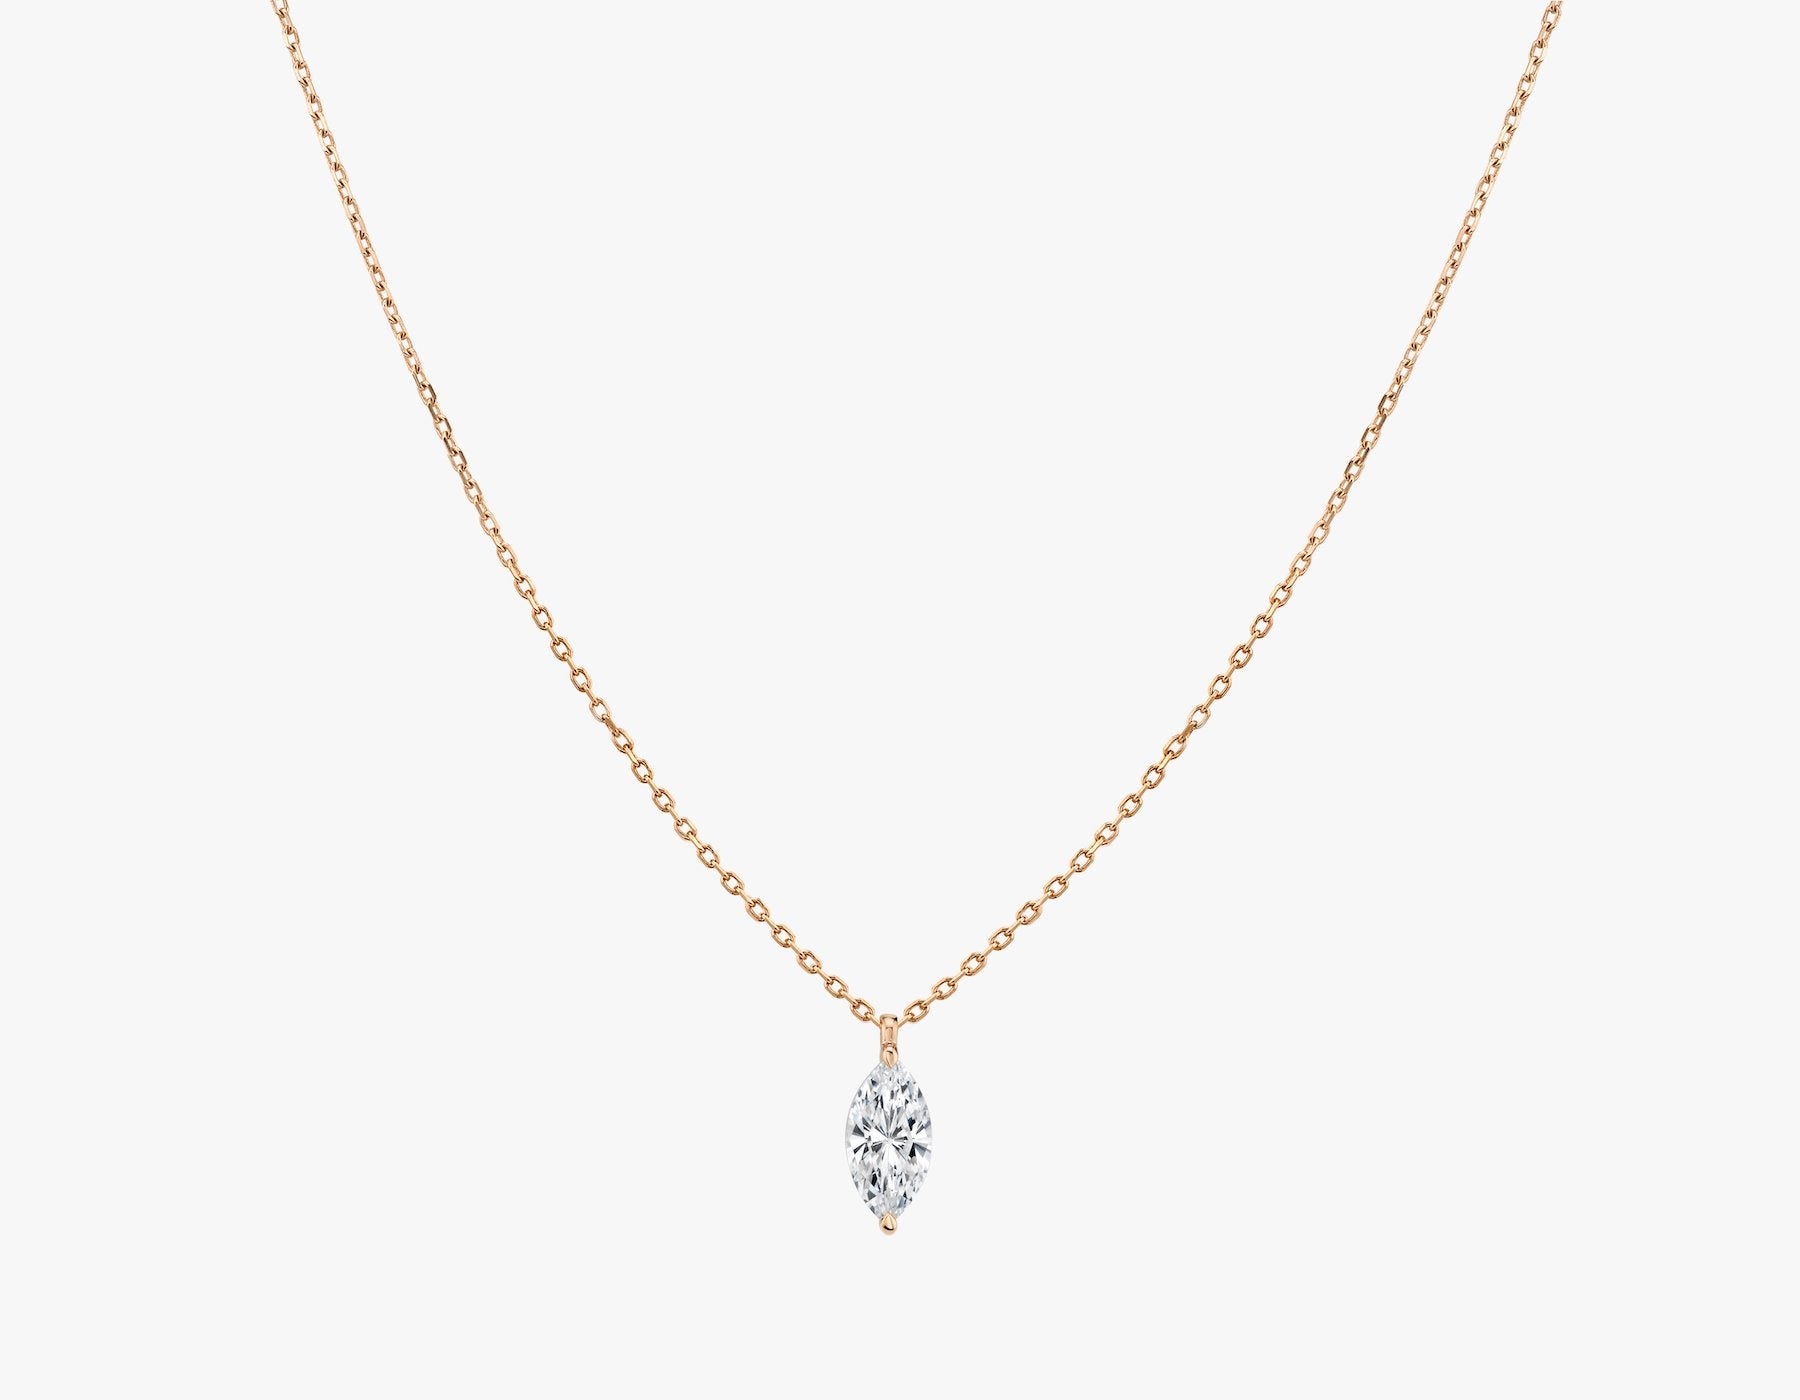 Vrai 14K solid gold solitaire marquise diamond pendant necklace 1ct minimalist delicate, 14K Rose Gold